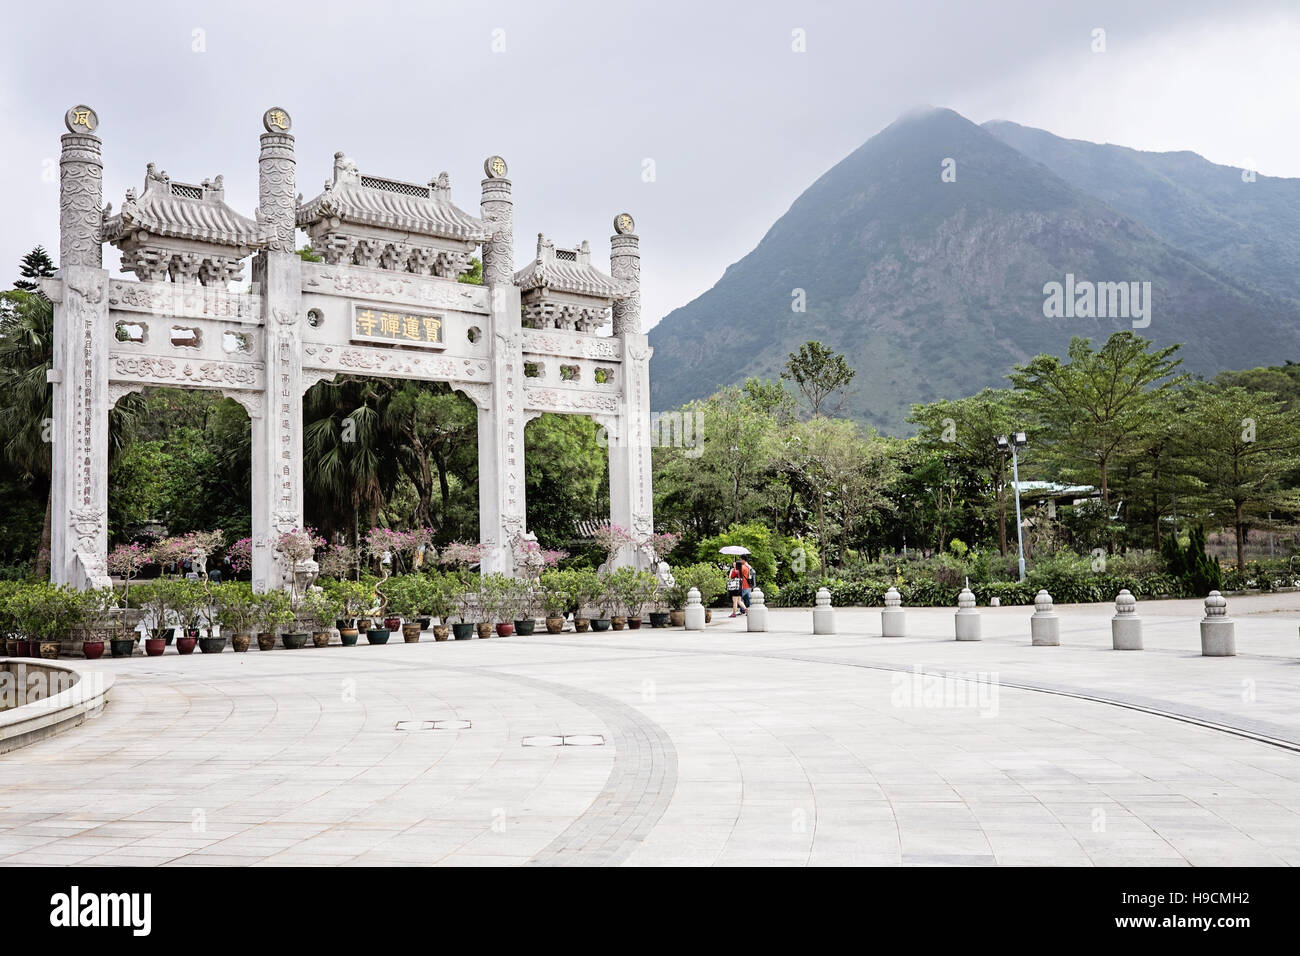 Entrance to Po Lin Monastery with mountain in background, Lantau Island, Hong Kong - Stock Image